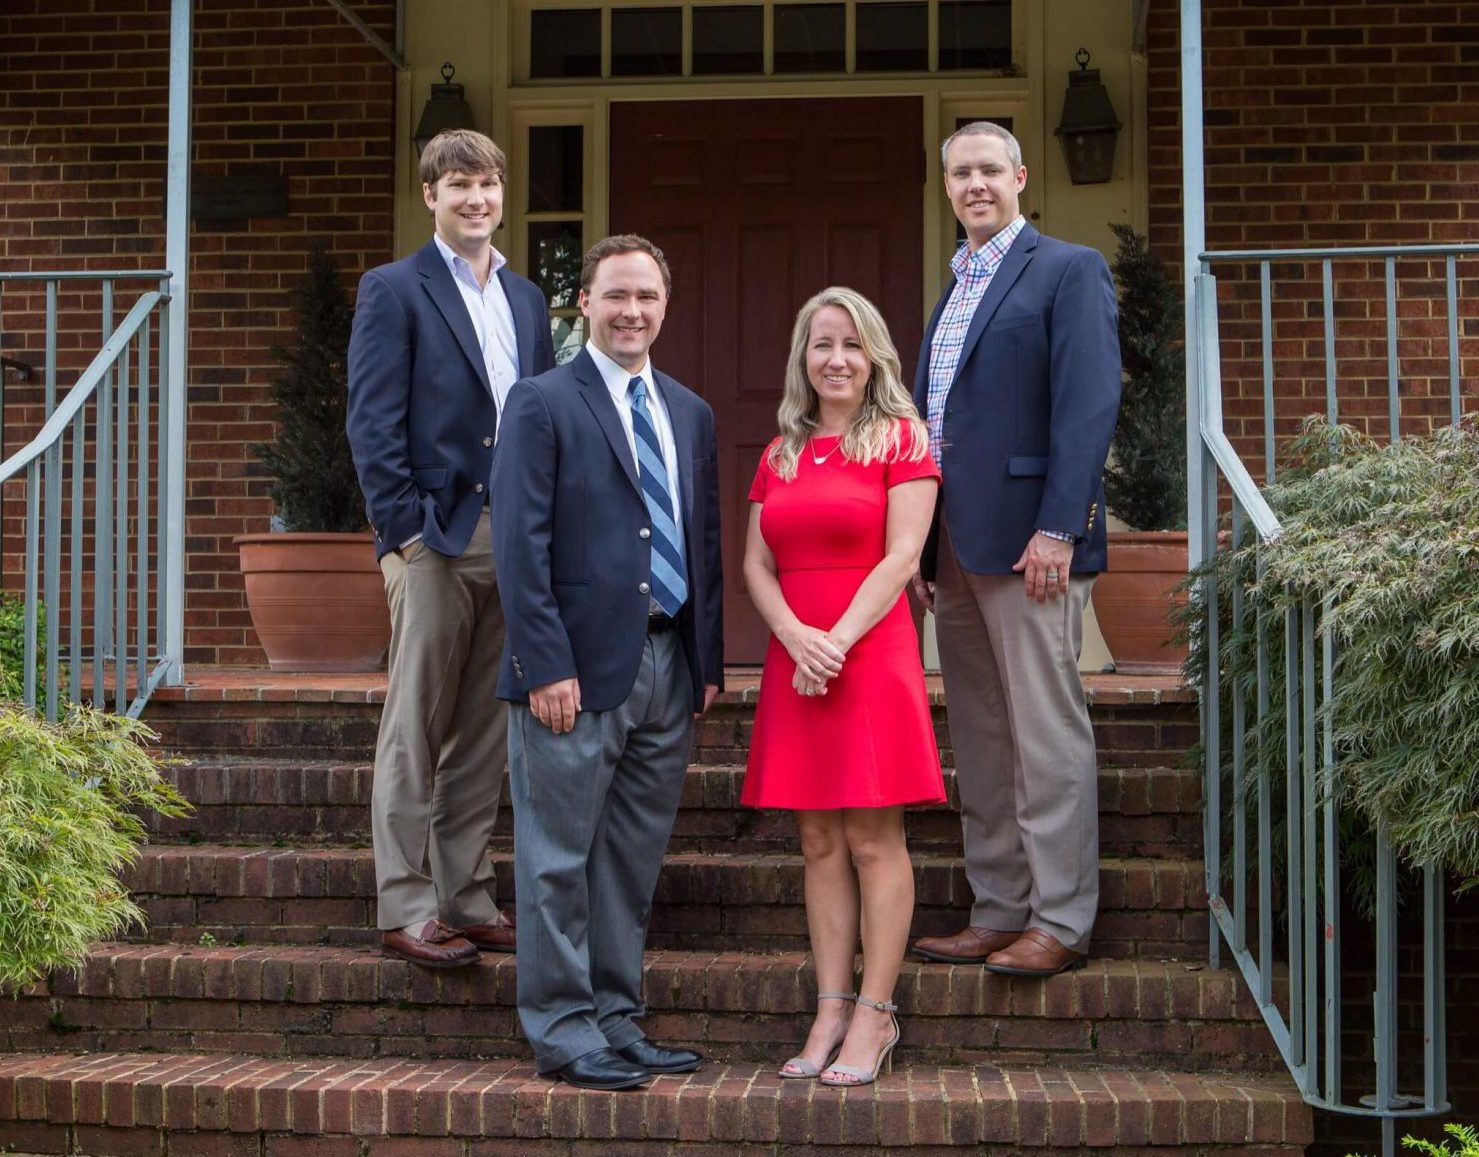 Bacon, Jessee, Perkins, Carroll, Anderson & Foust, LLP   Experienced attorneys in Knoxville and Morristown